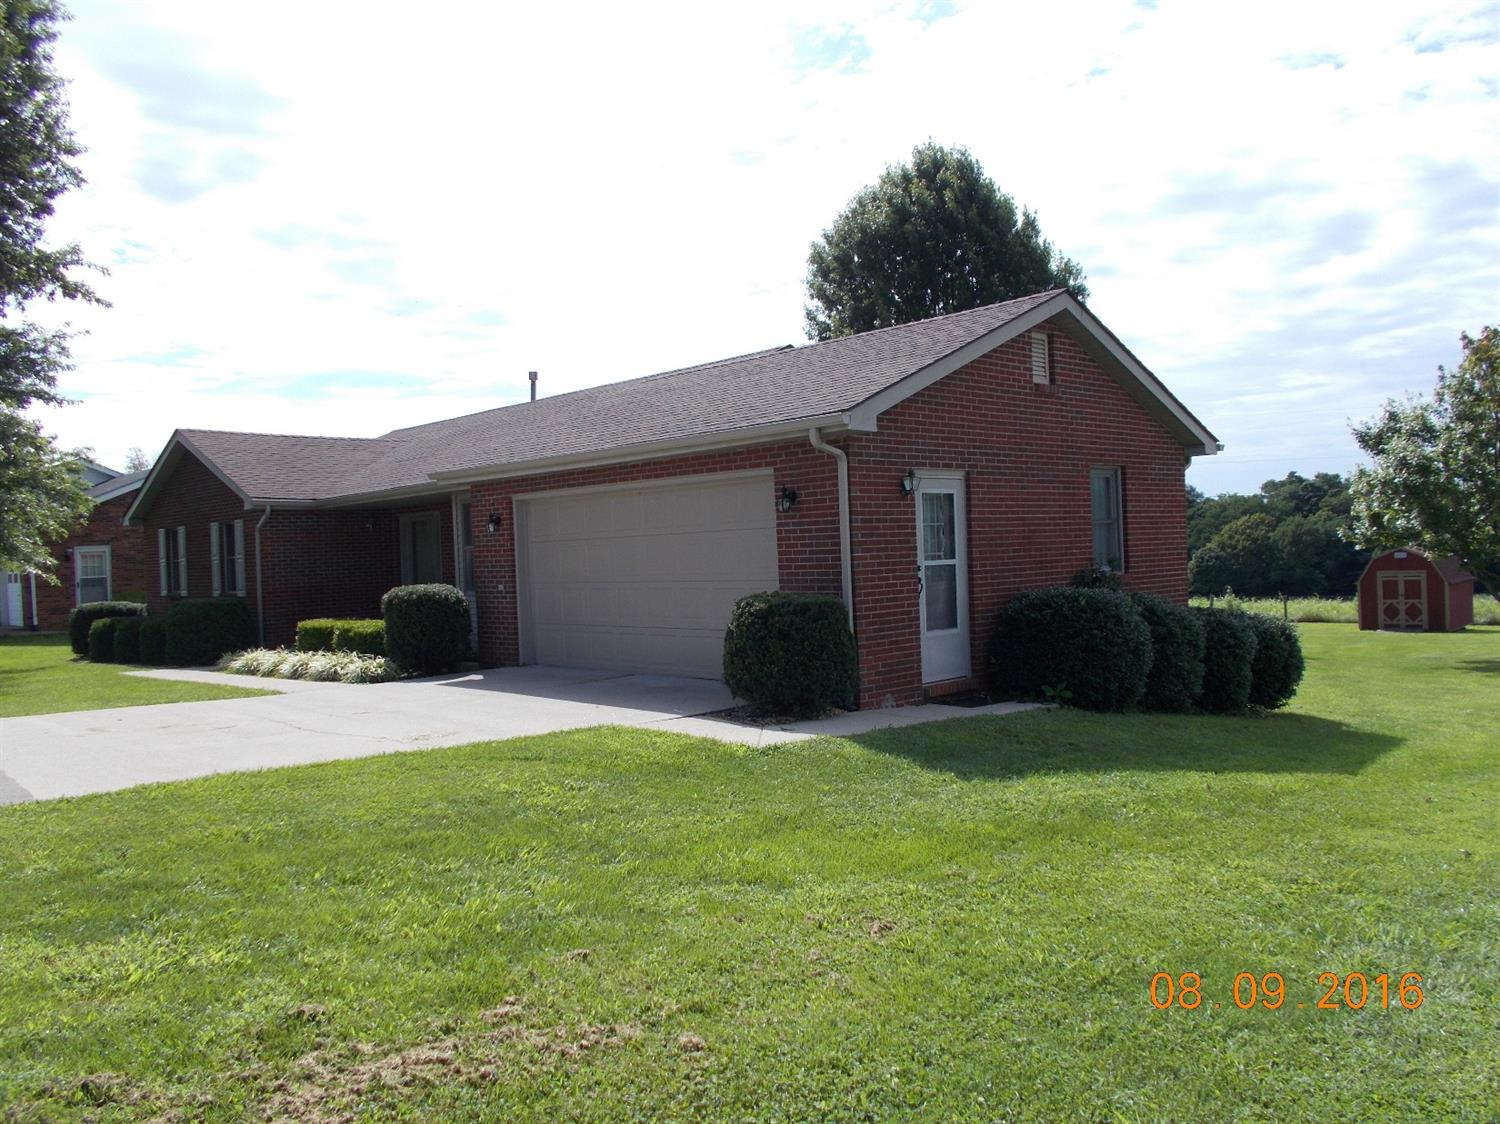 116 James Way, Mt Sterling, KY 40353